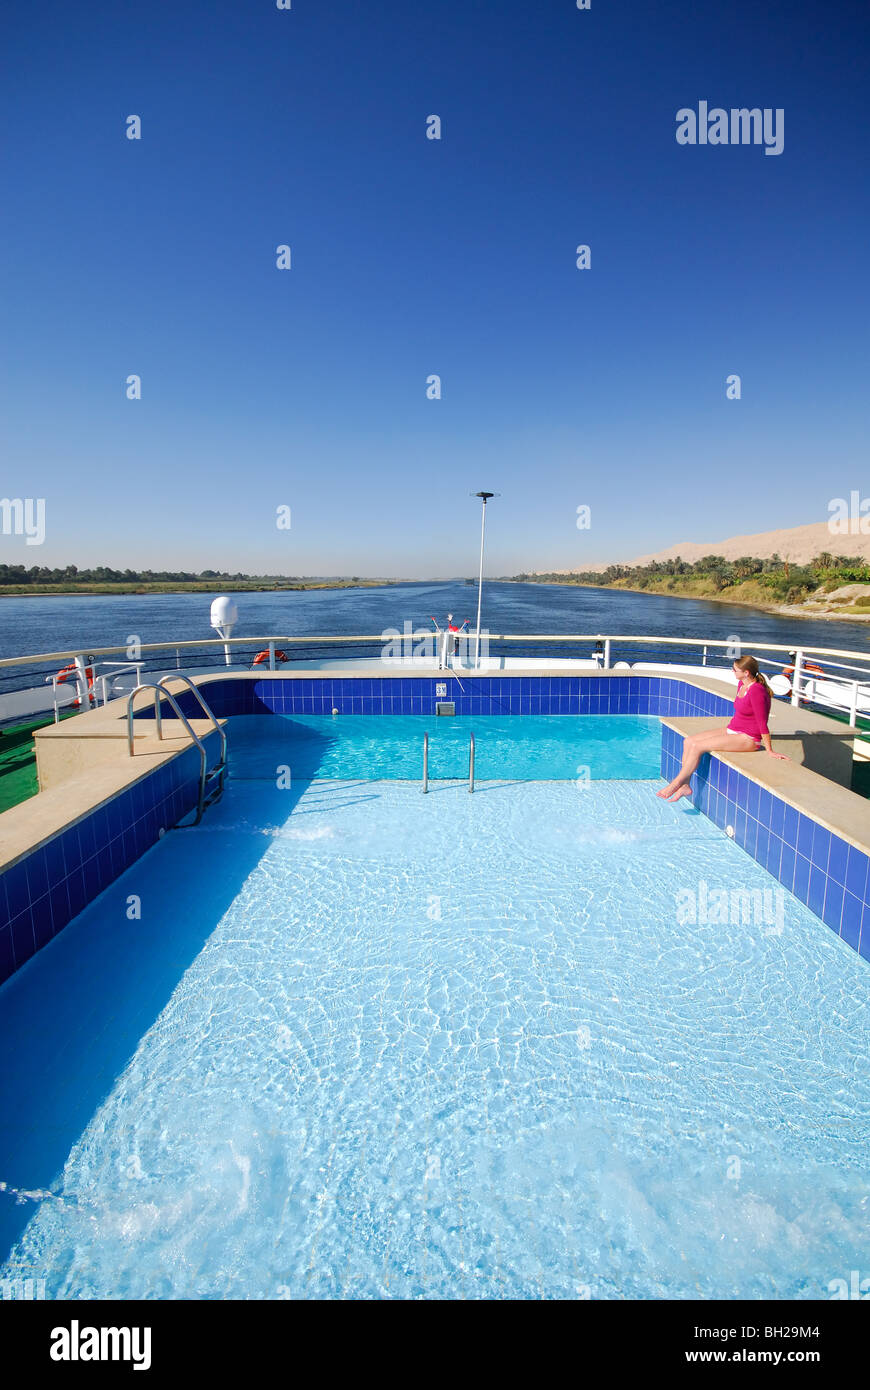 RIVER NILE, UPPER EGYPT. Swimming pool on a Nile cruise boat sailing between Luxor and Aswan. Stock Photo